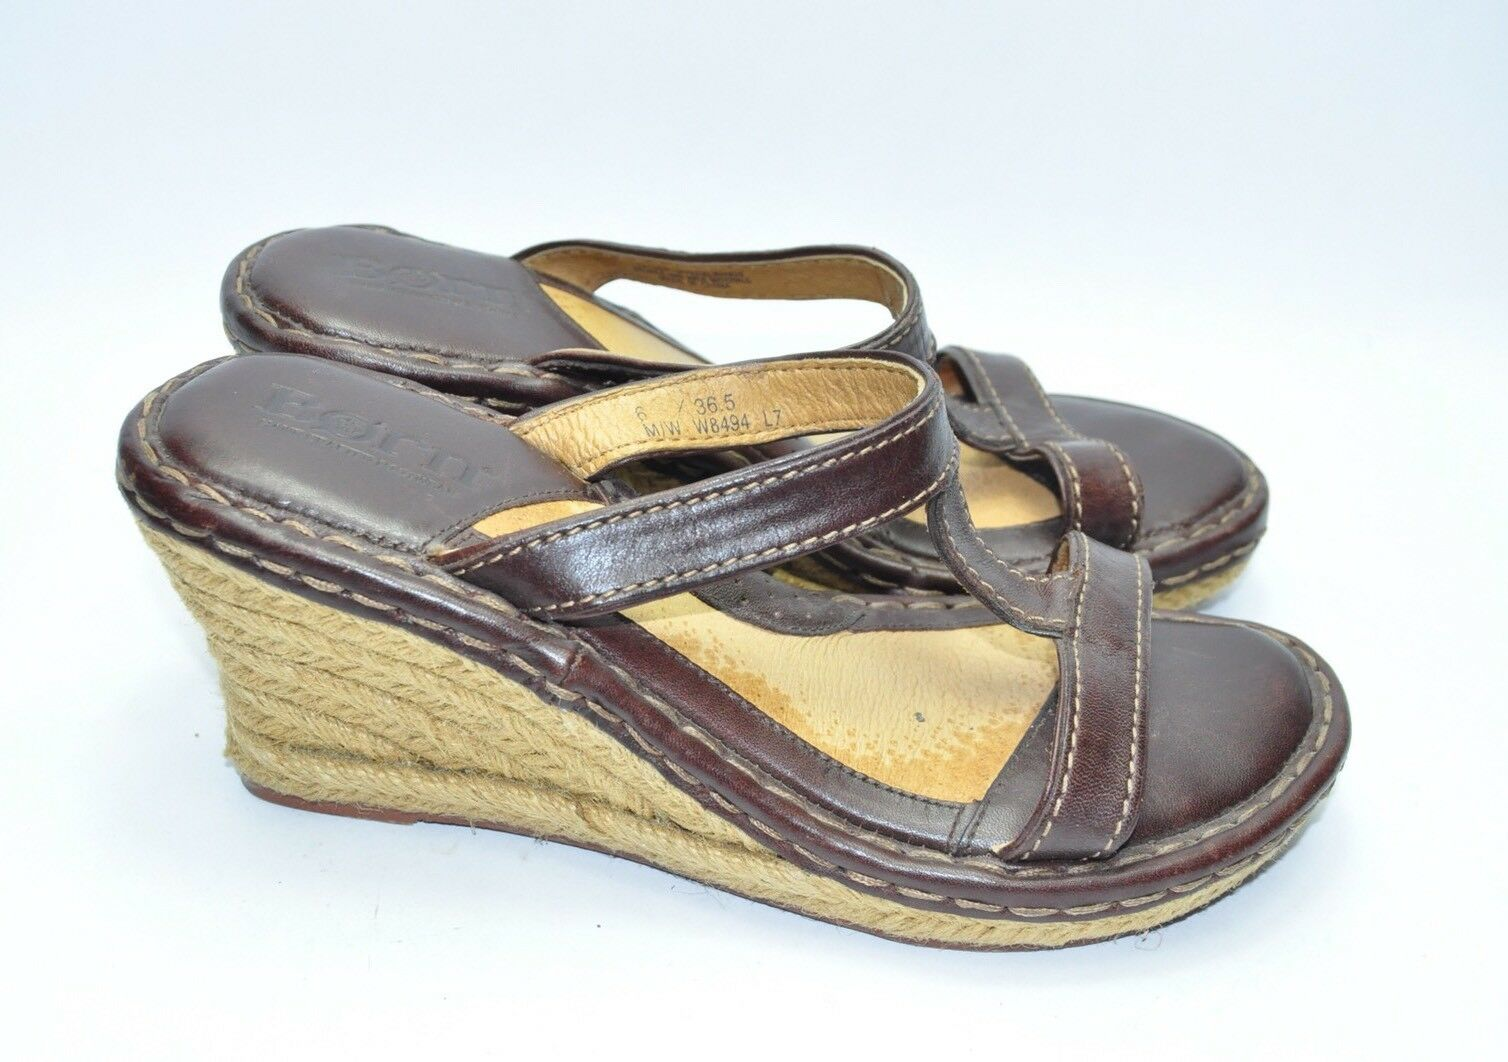 Womens Nearly New Brown Leather BORN Wedge Sandals Size 6 US.